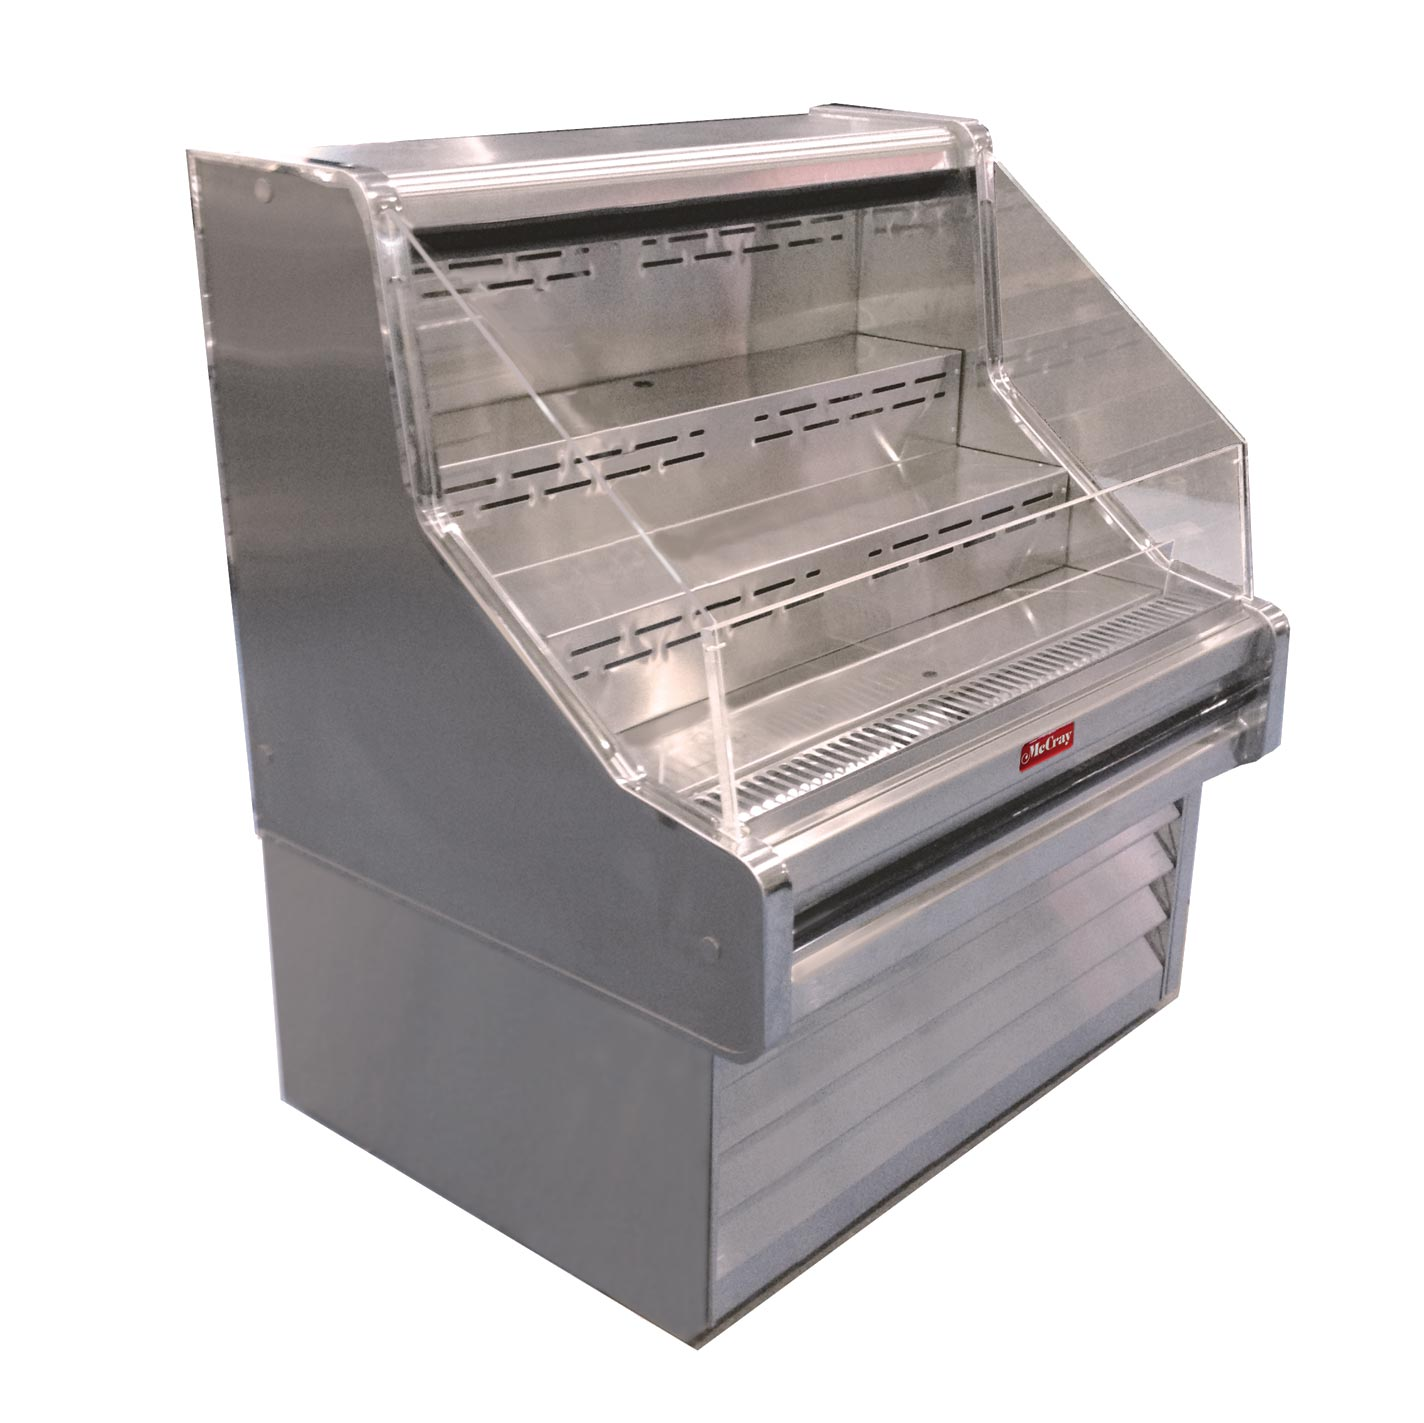 Howard-McCray R-OS35E-4-S merchandiser, open refrigerated display